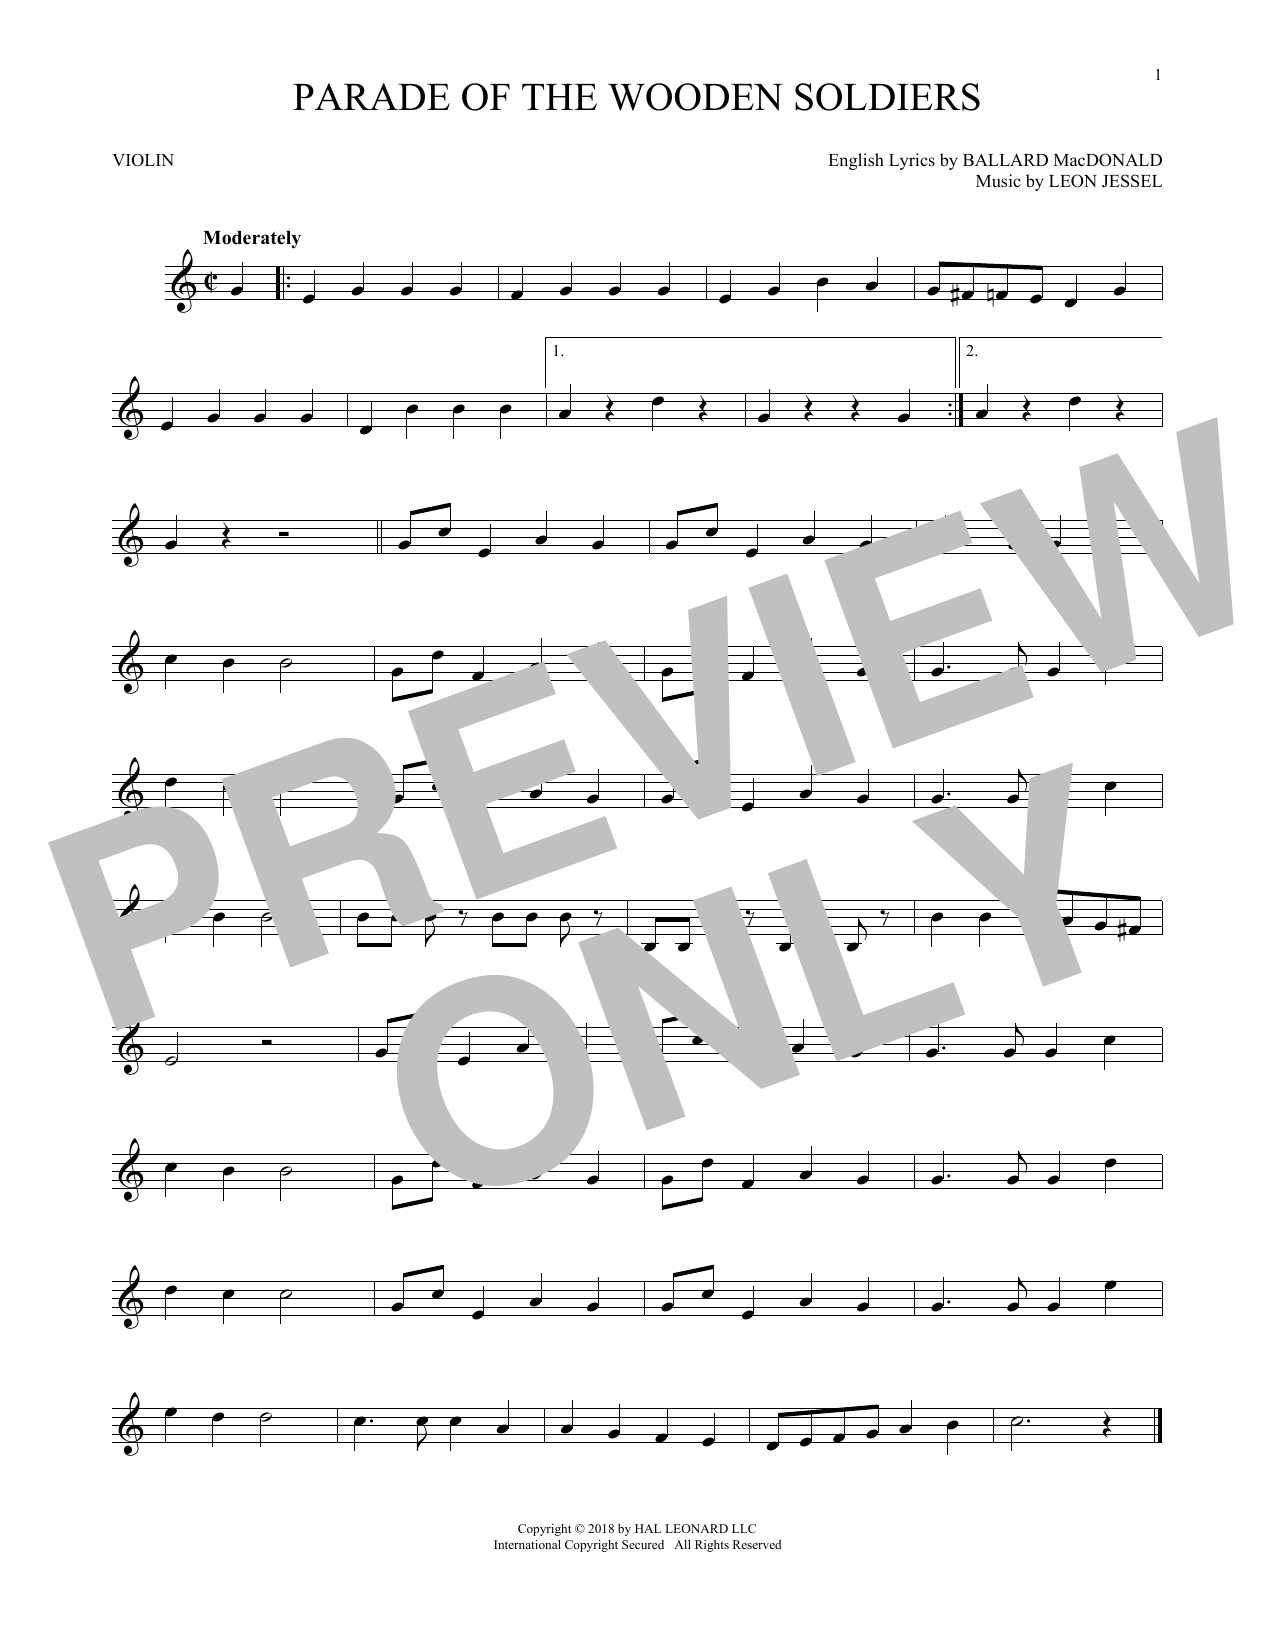 Ballard MacDonald and Leon Jessel Parade Of The Wooden Soldiers sheet music notes and chords